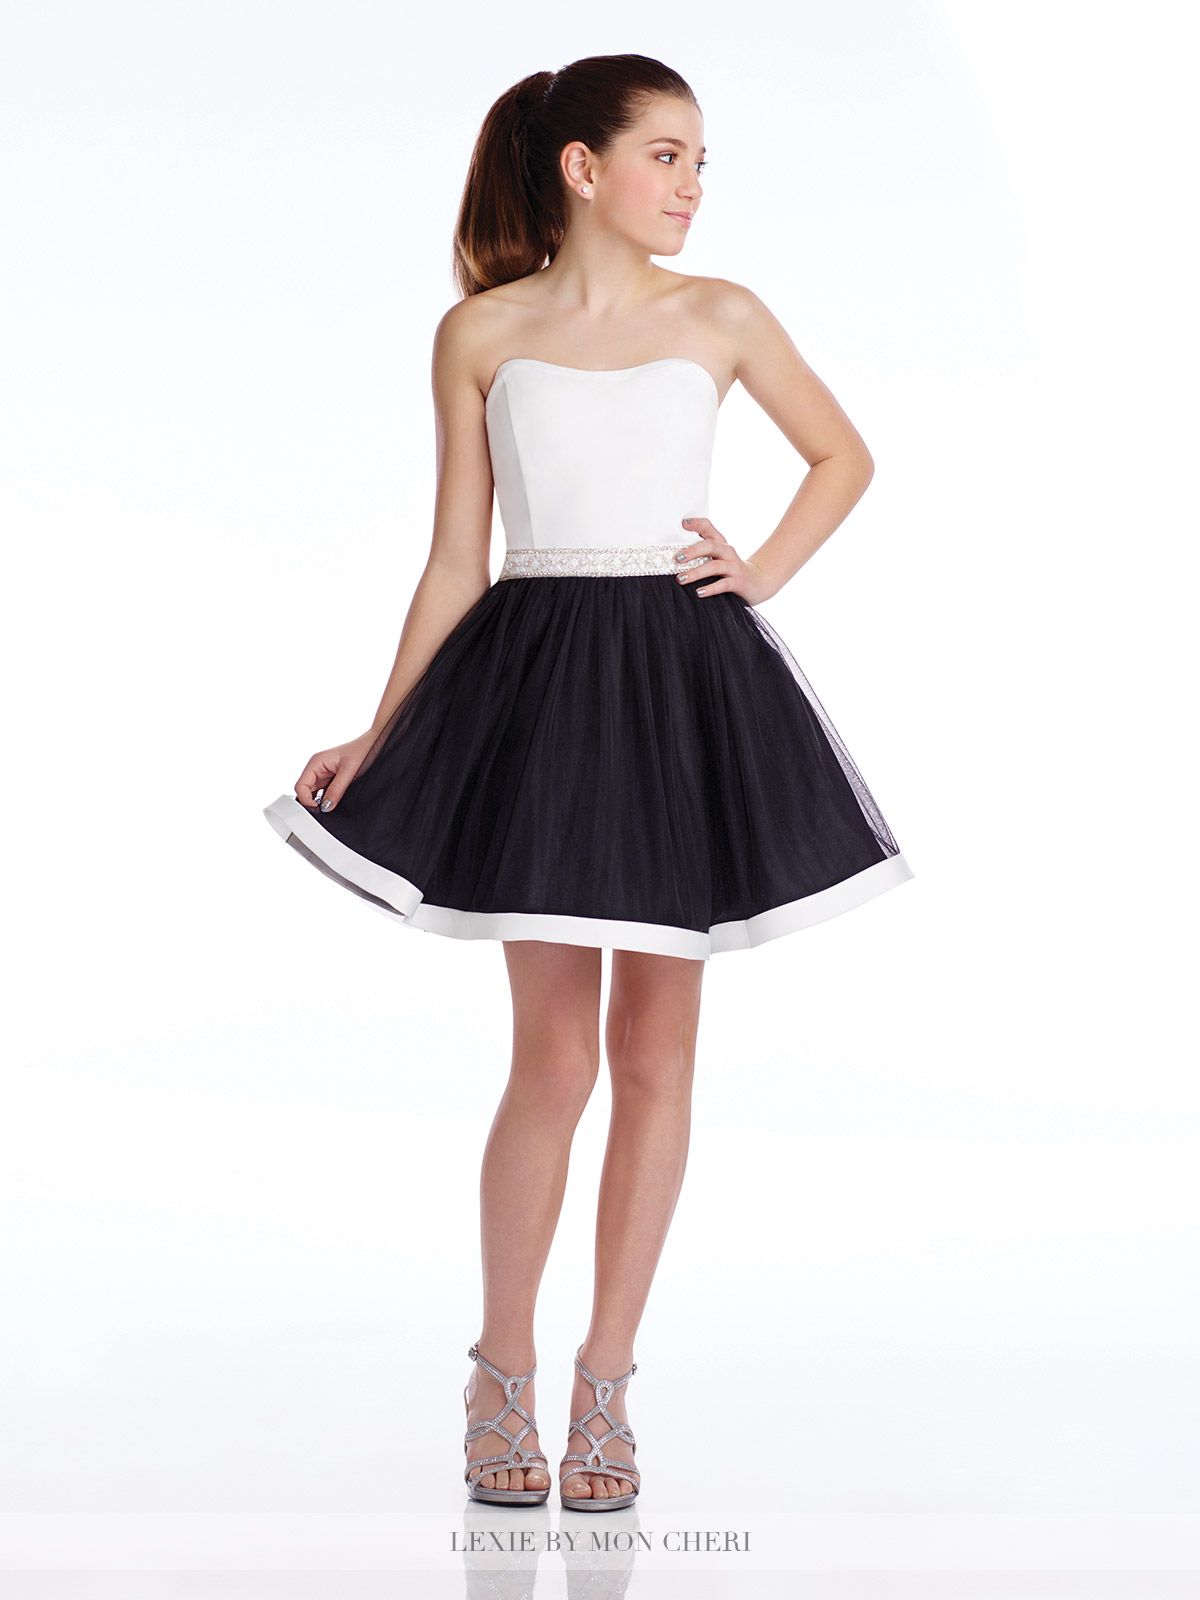 faf4572e210f Lexie by Mon Cheri Black   White Satin Tulle Jr Prom Dress 16 - Semi ...